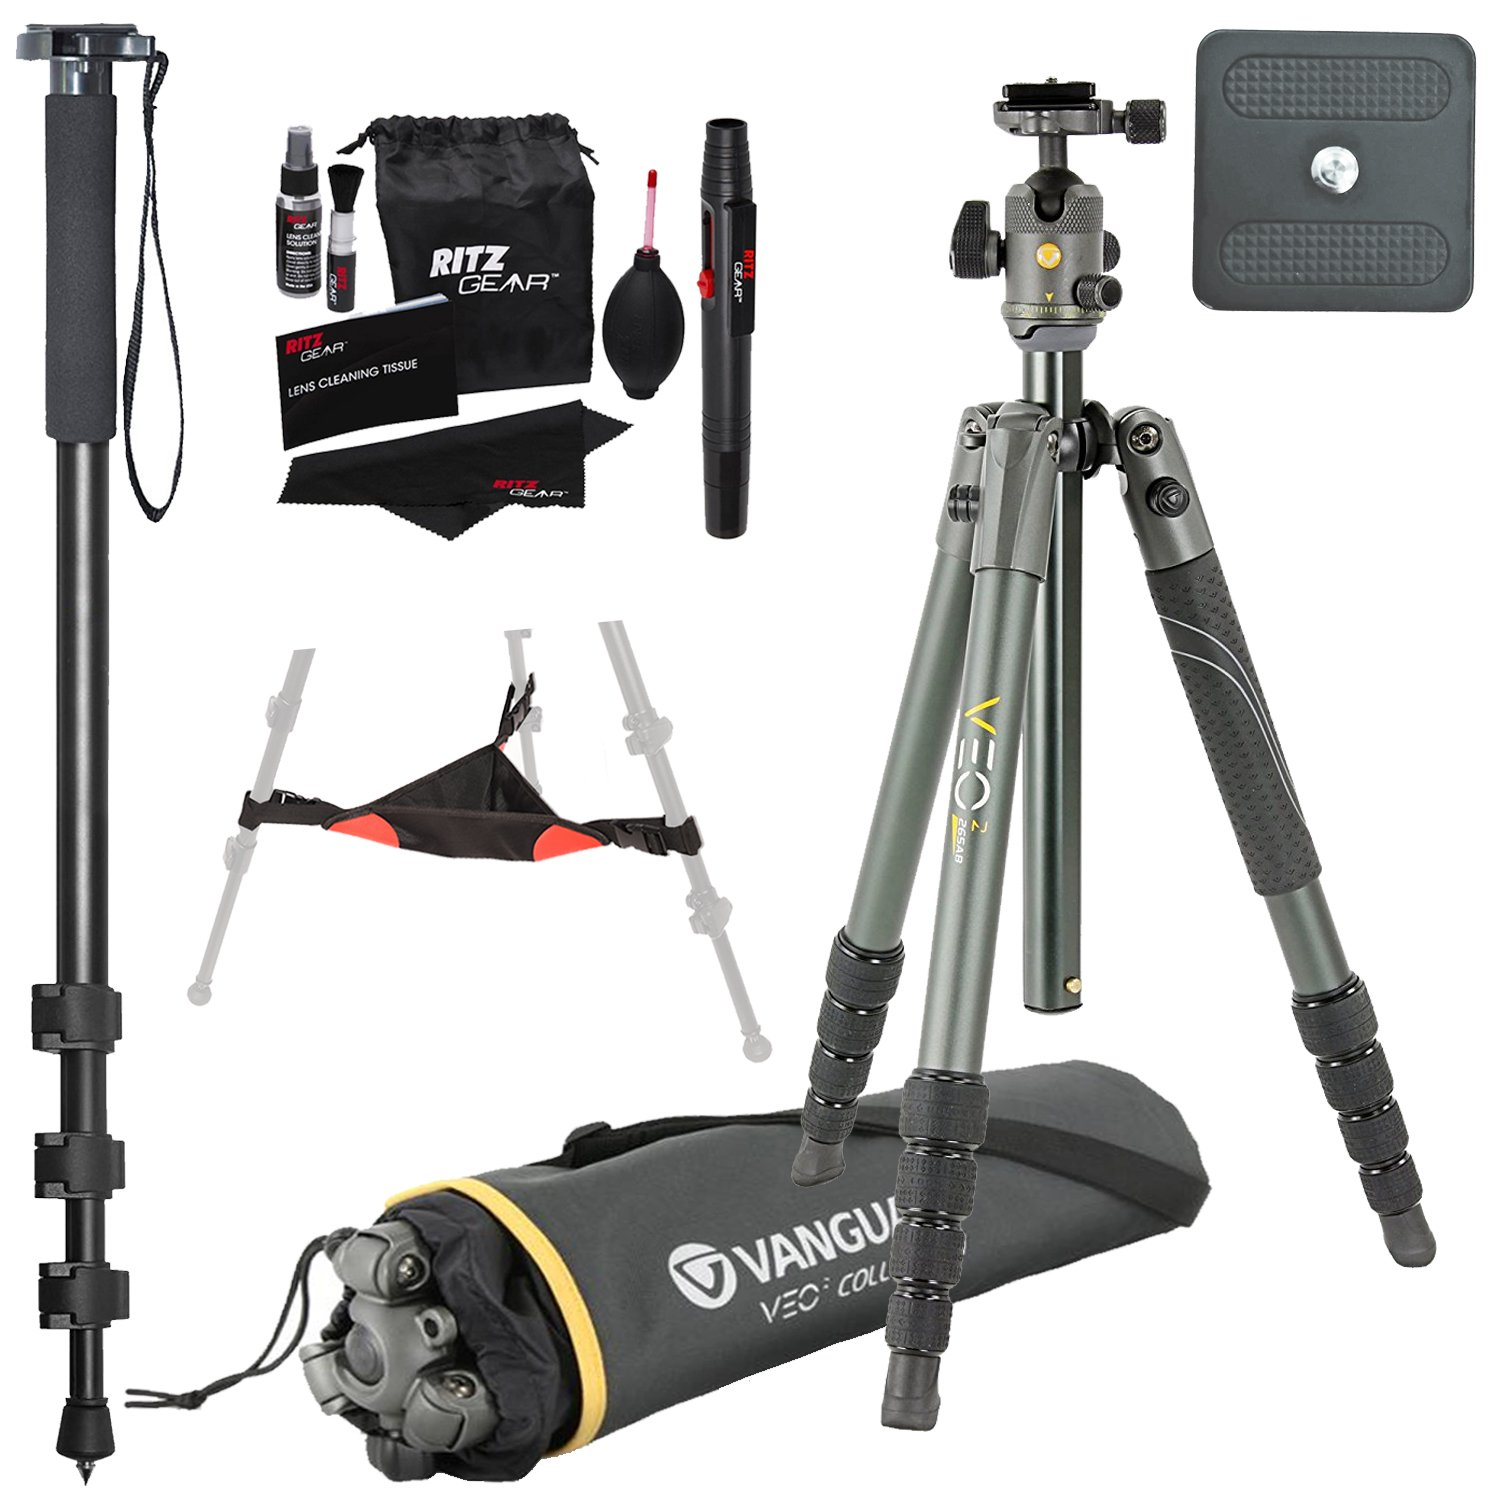 Vanguard VEO 2 265AB Aluminum Tripod with VEO 2 BH-50 Ball Head, Ritz Gear Tripod Stone Bag, 72-Inch Monopod with Quick Release and Ritz Gear Cleaning Kit